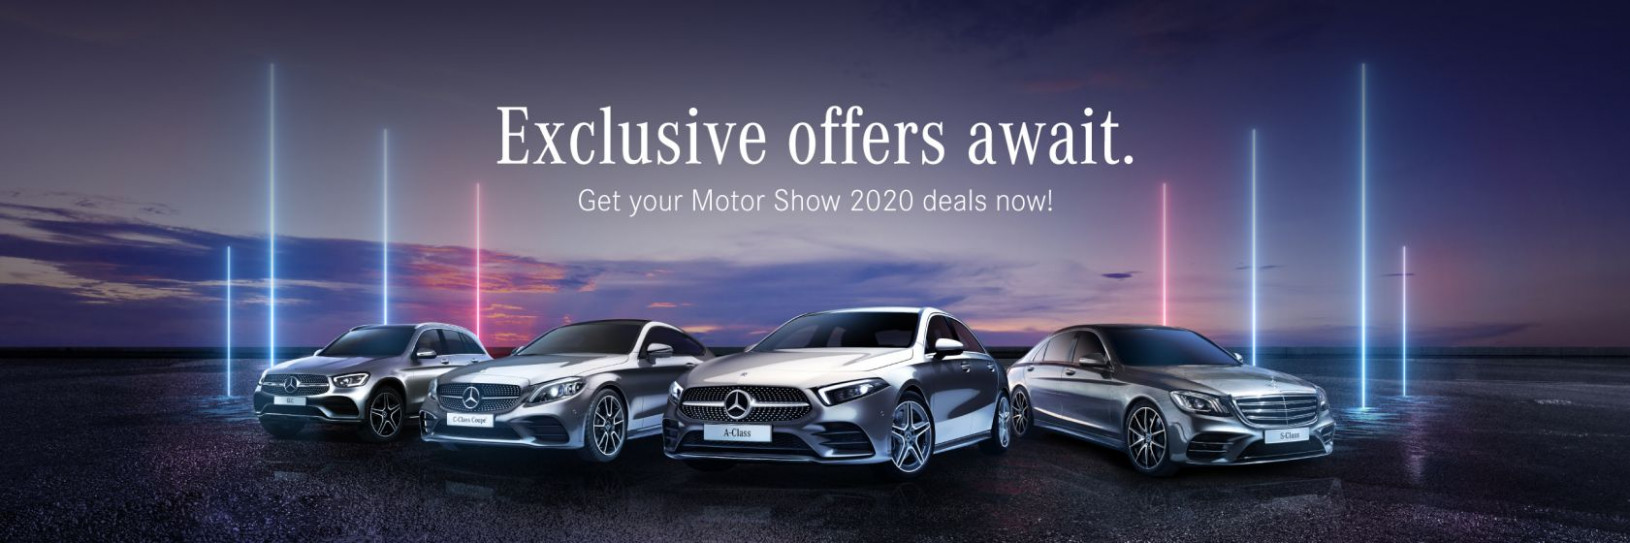 Promotions - mercedes 2020 offers